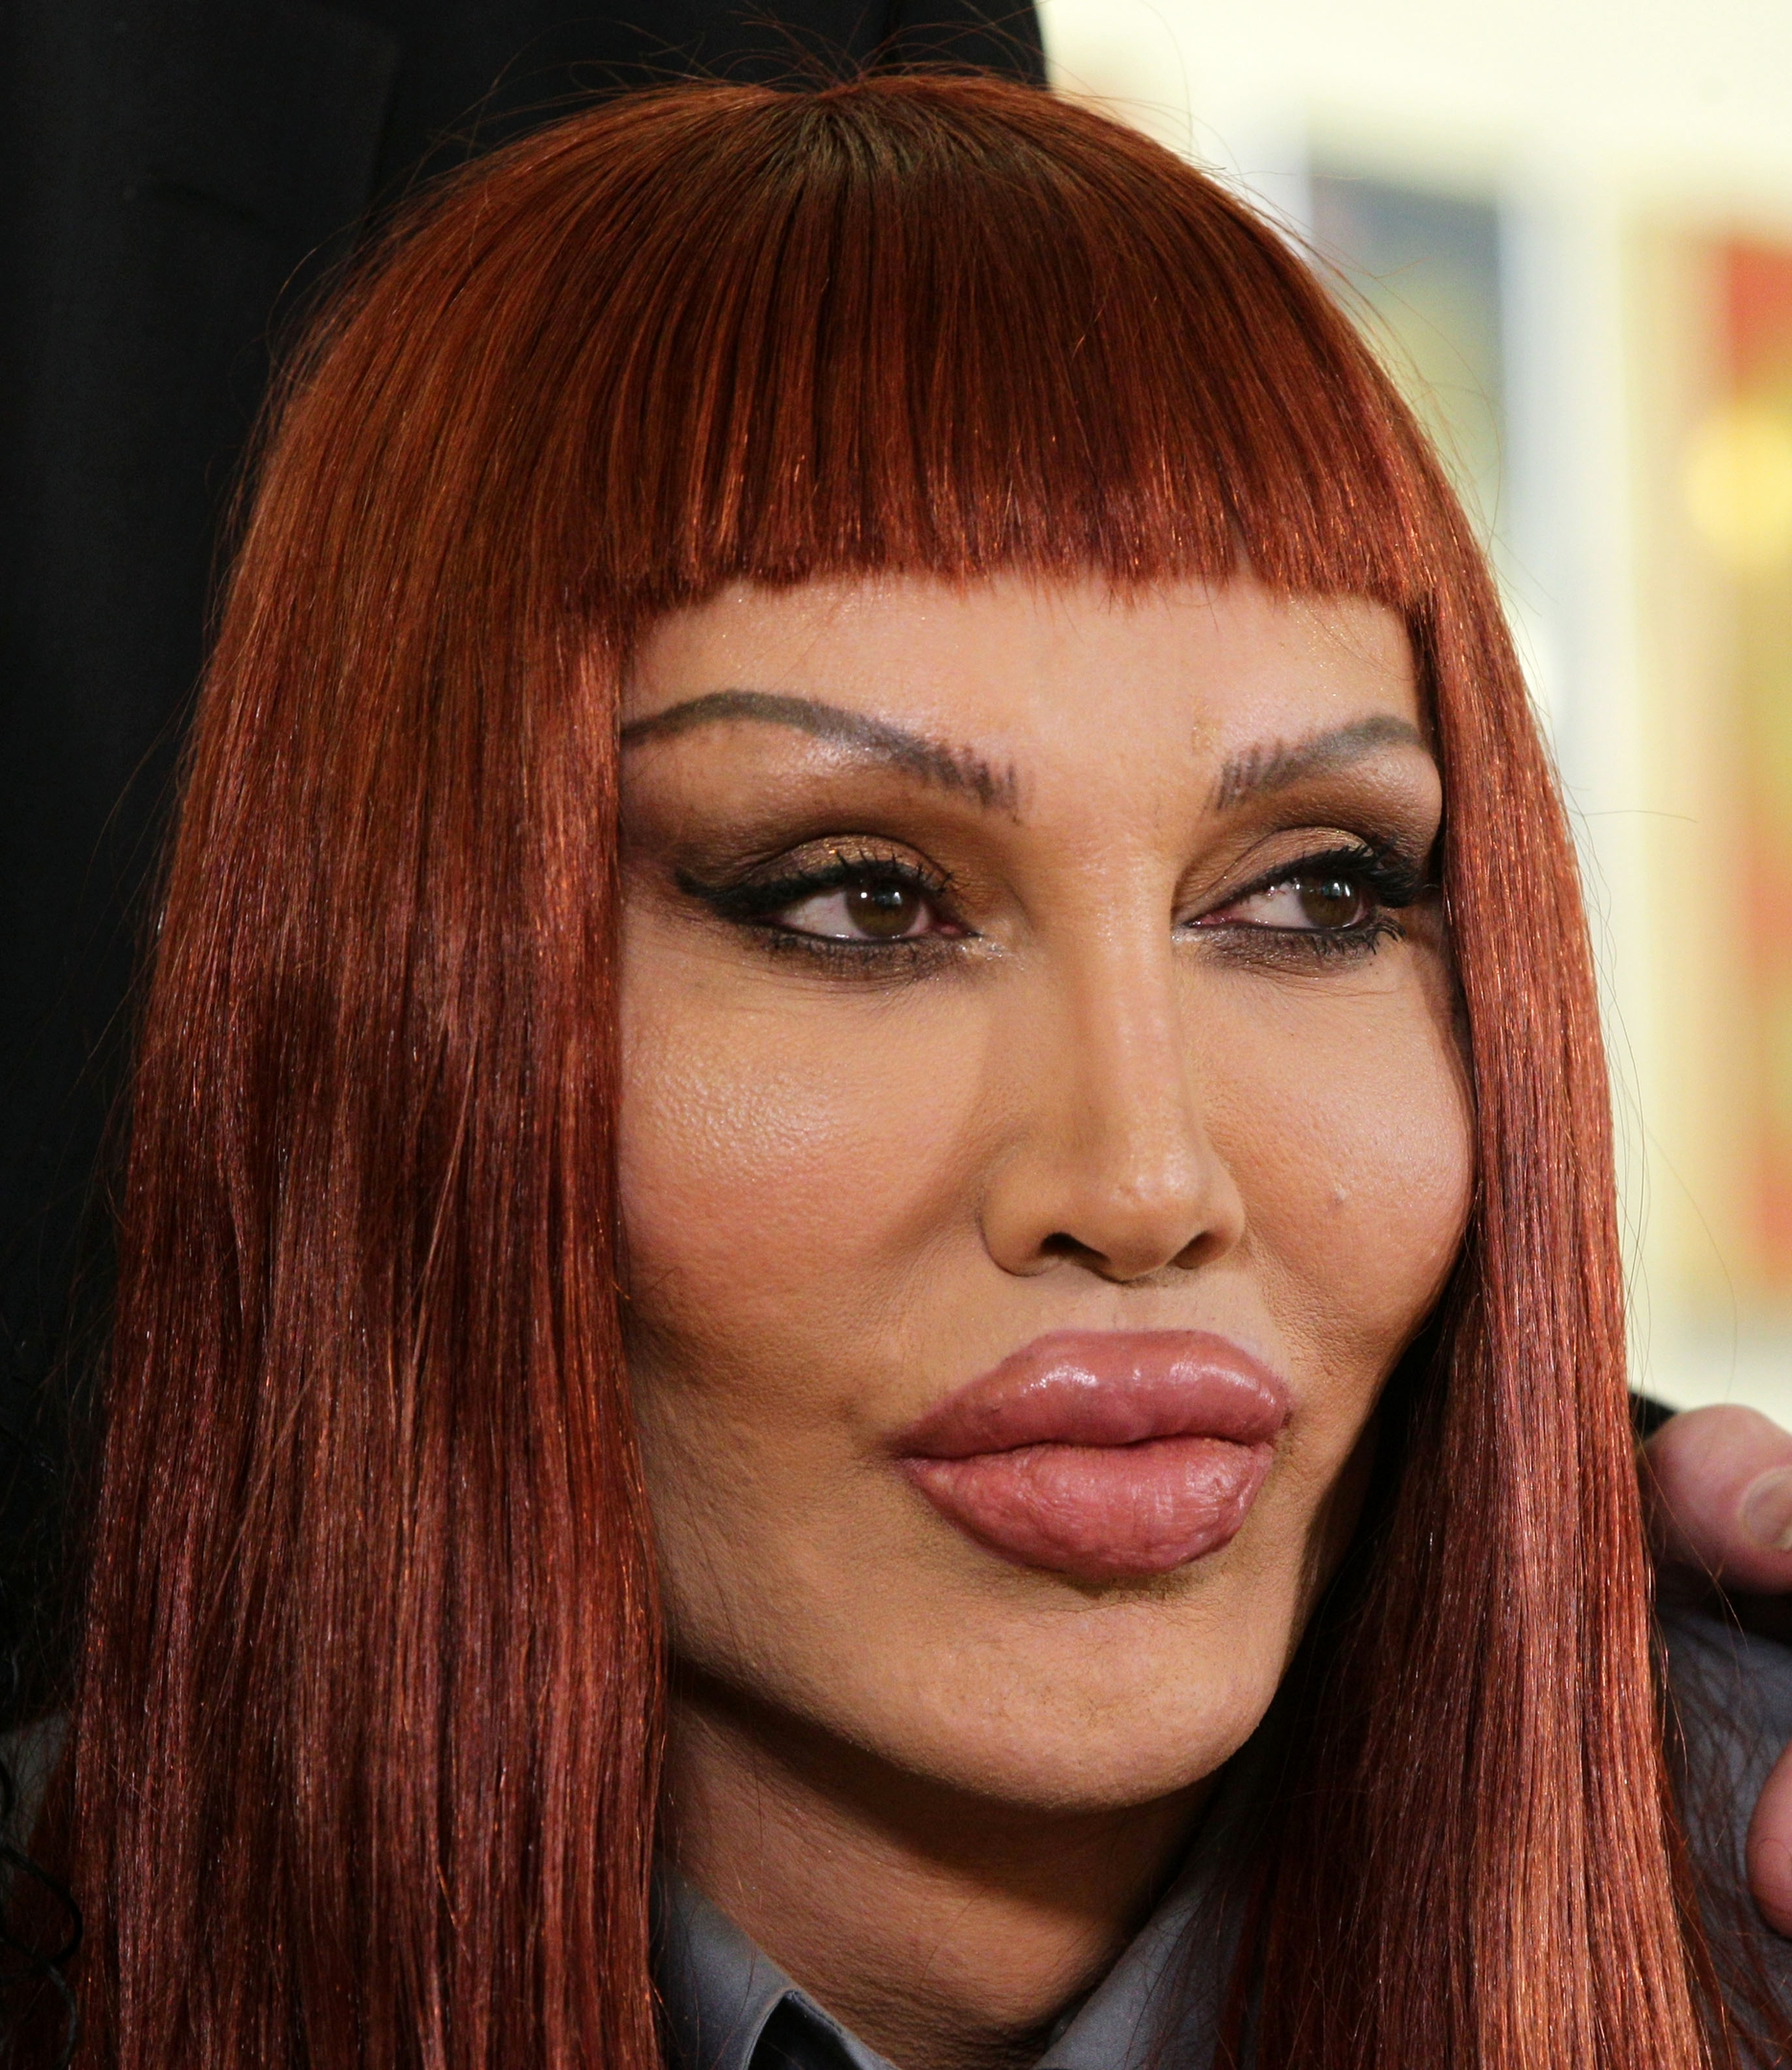 Pete Burns who has died at the age of 57.